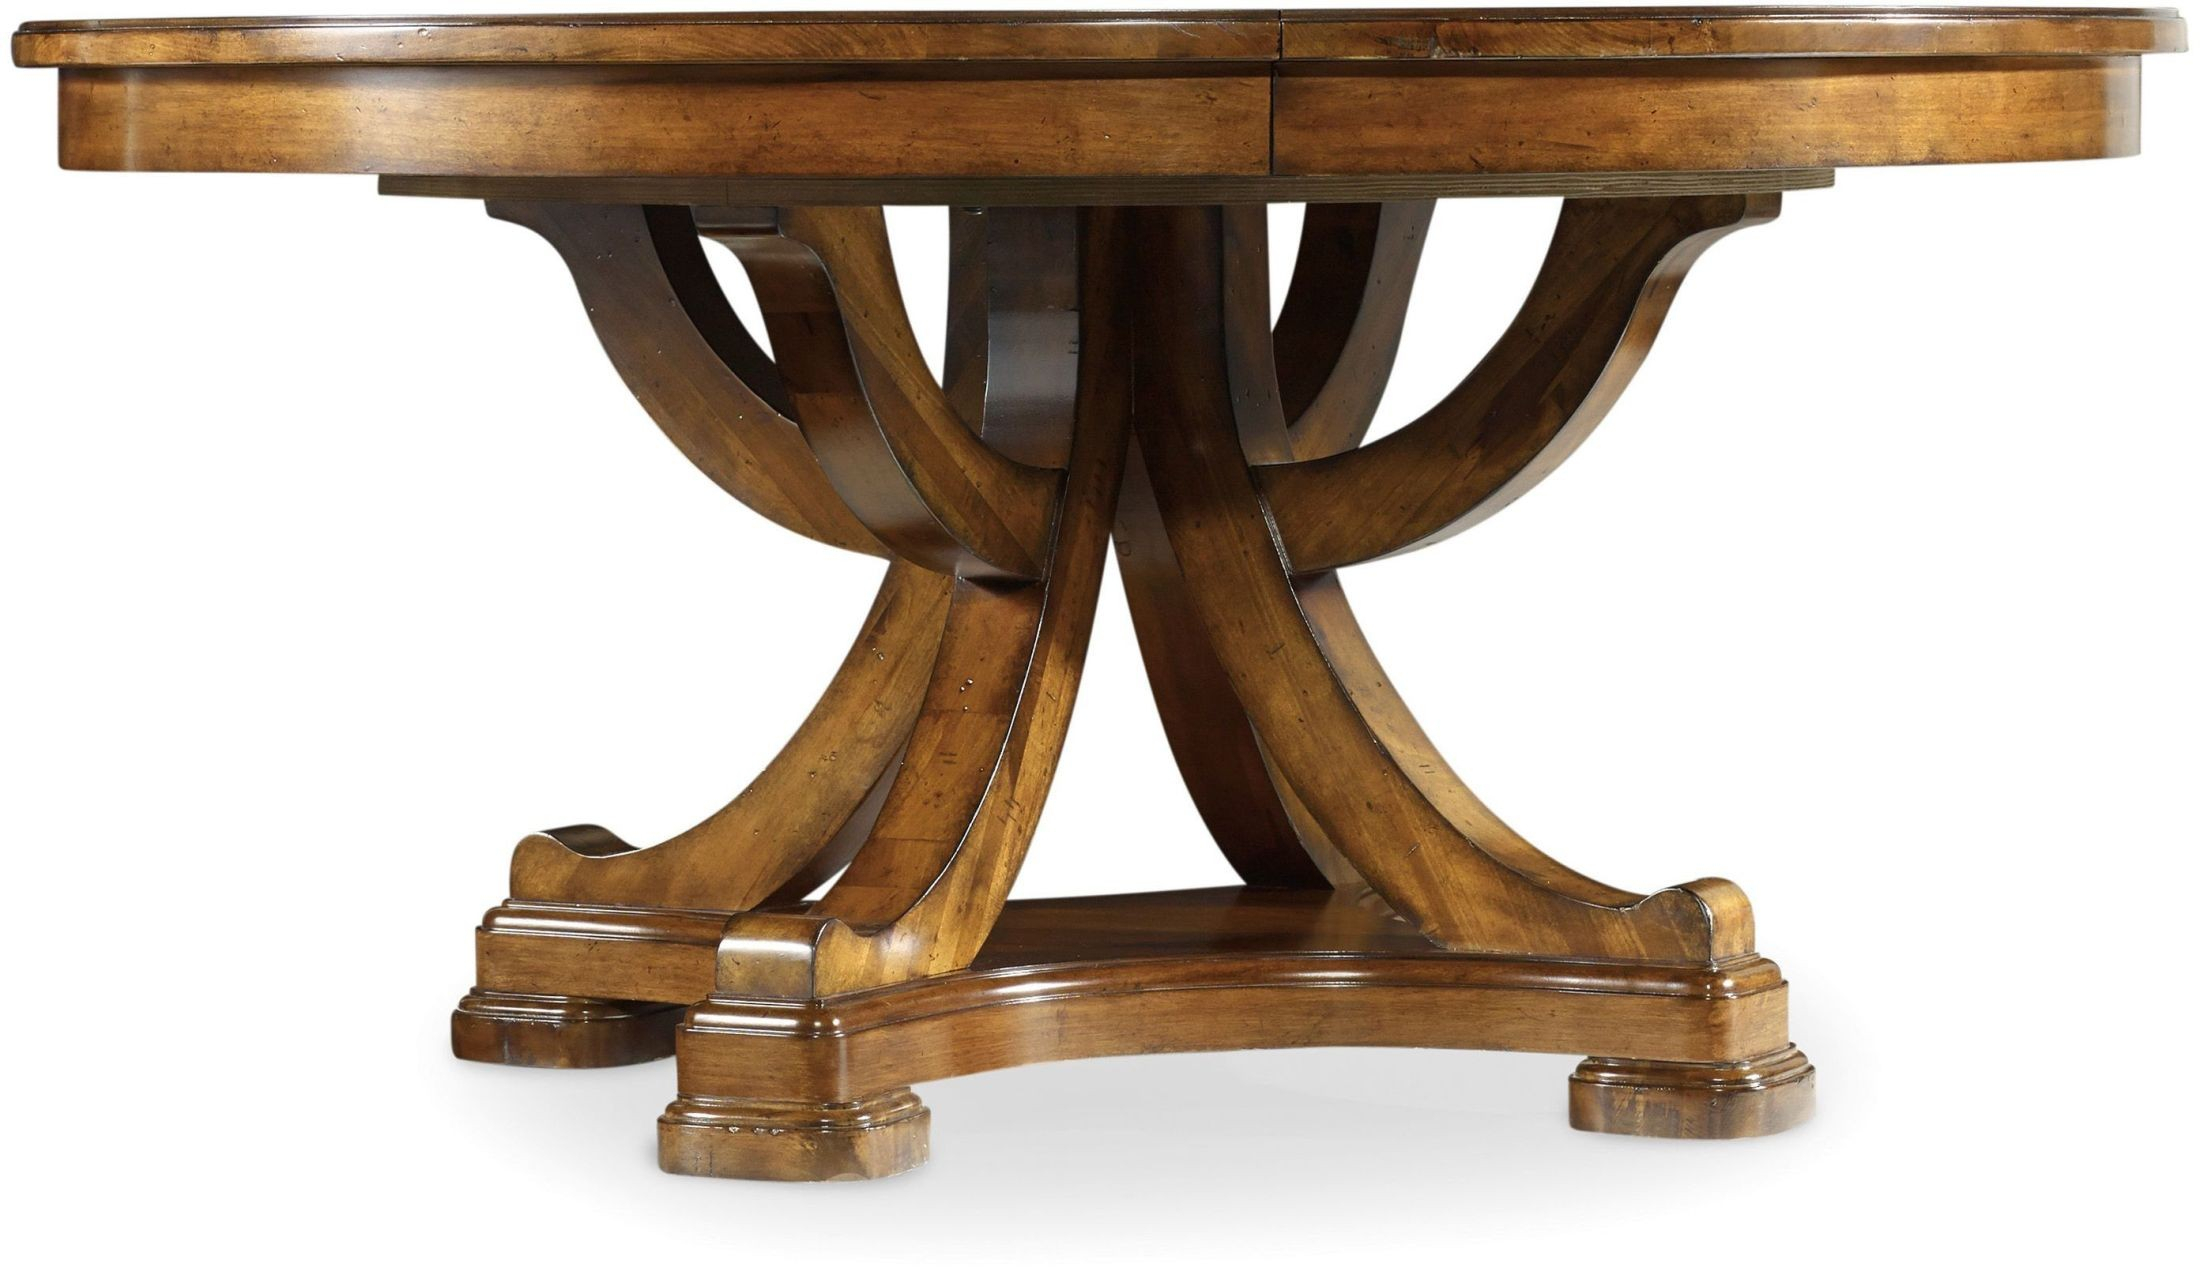 Tynecastle Brown Round Pedestal Extendable Dining Table Inside Most Recently Released Kirt Pedestal Dining Tables (View 14 of 15)